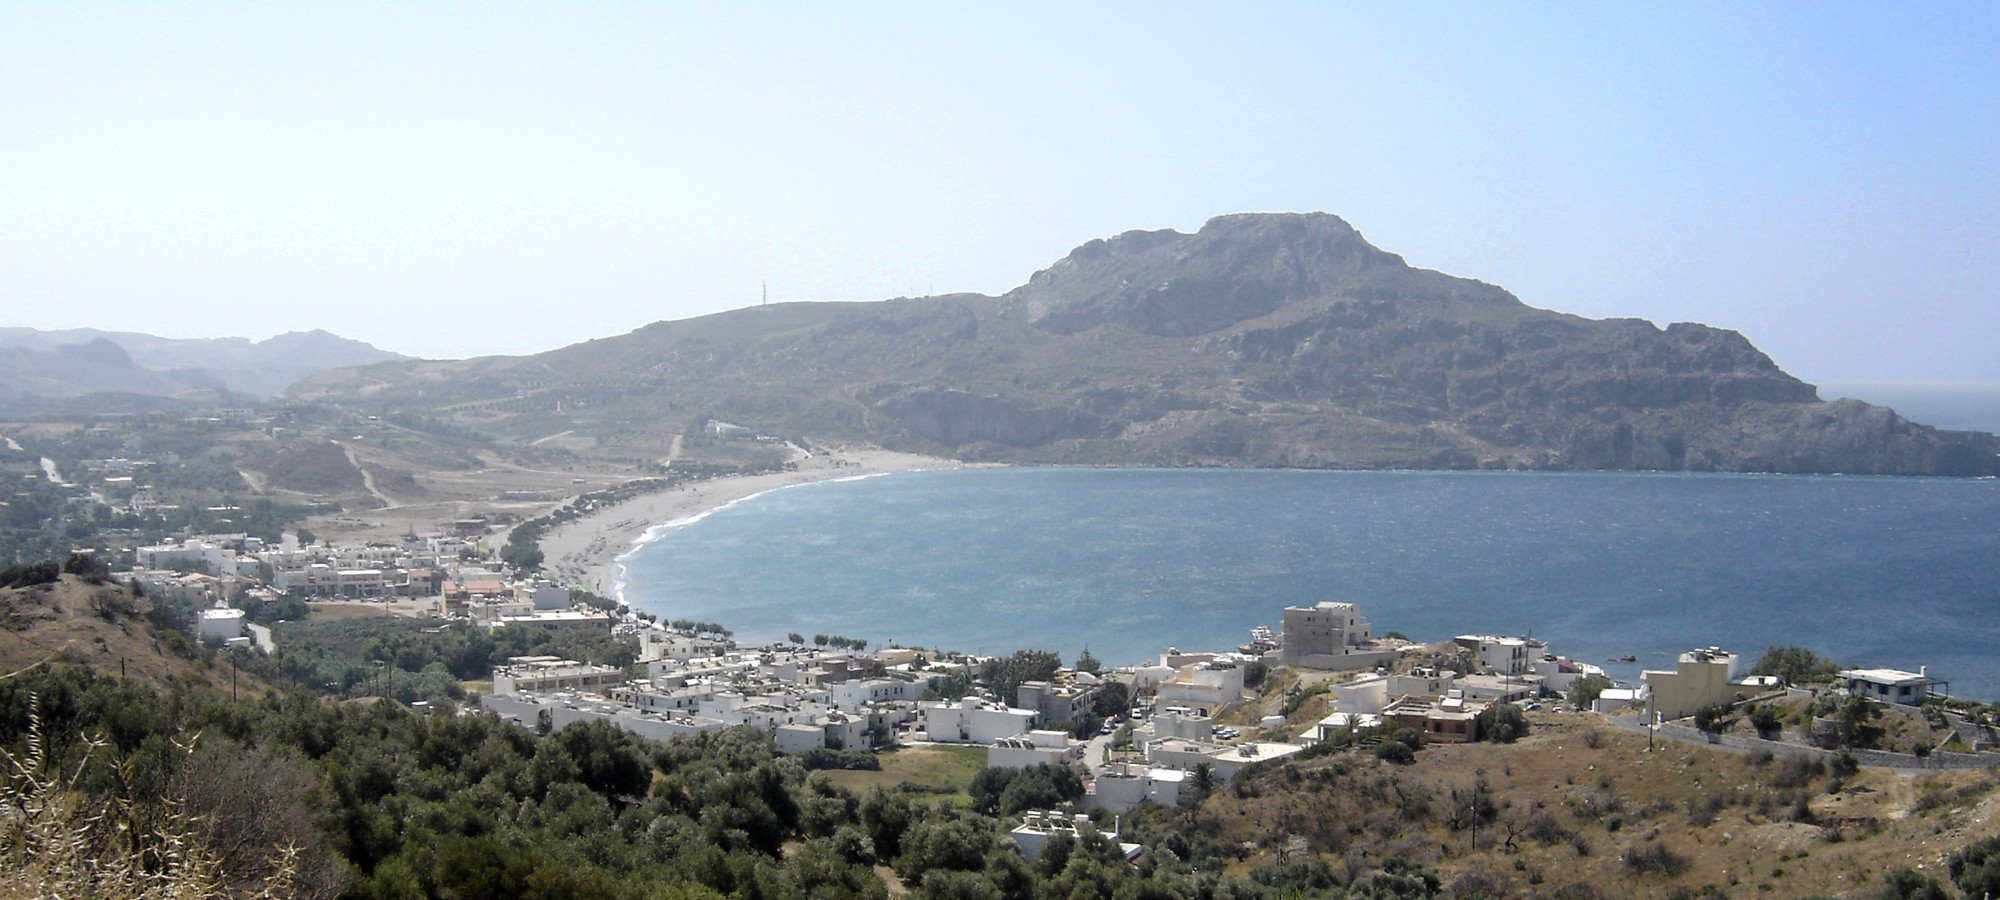 The Plakias Bay